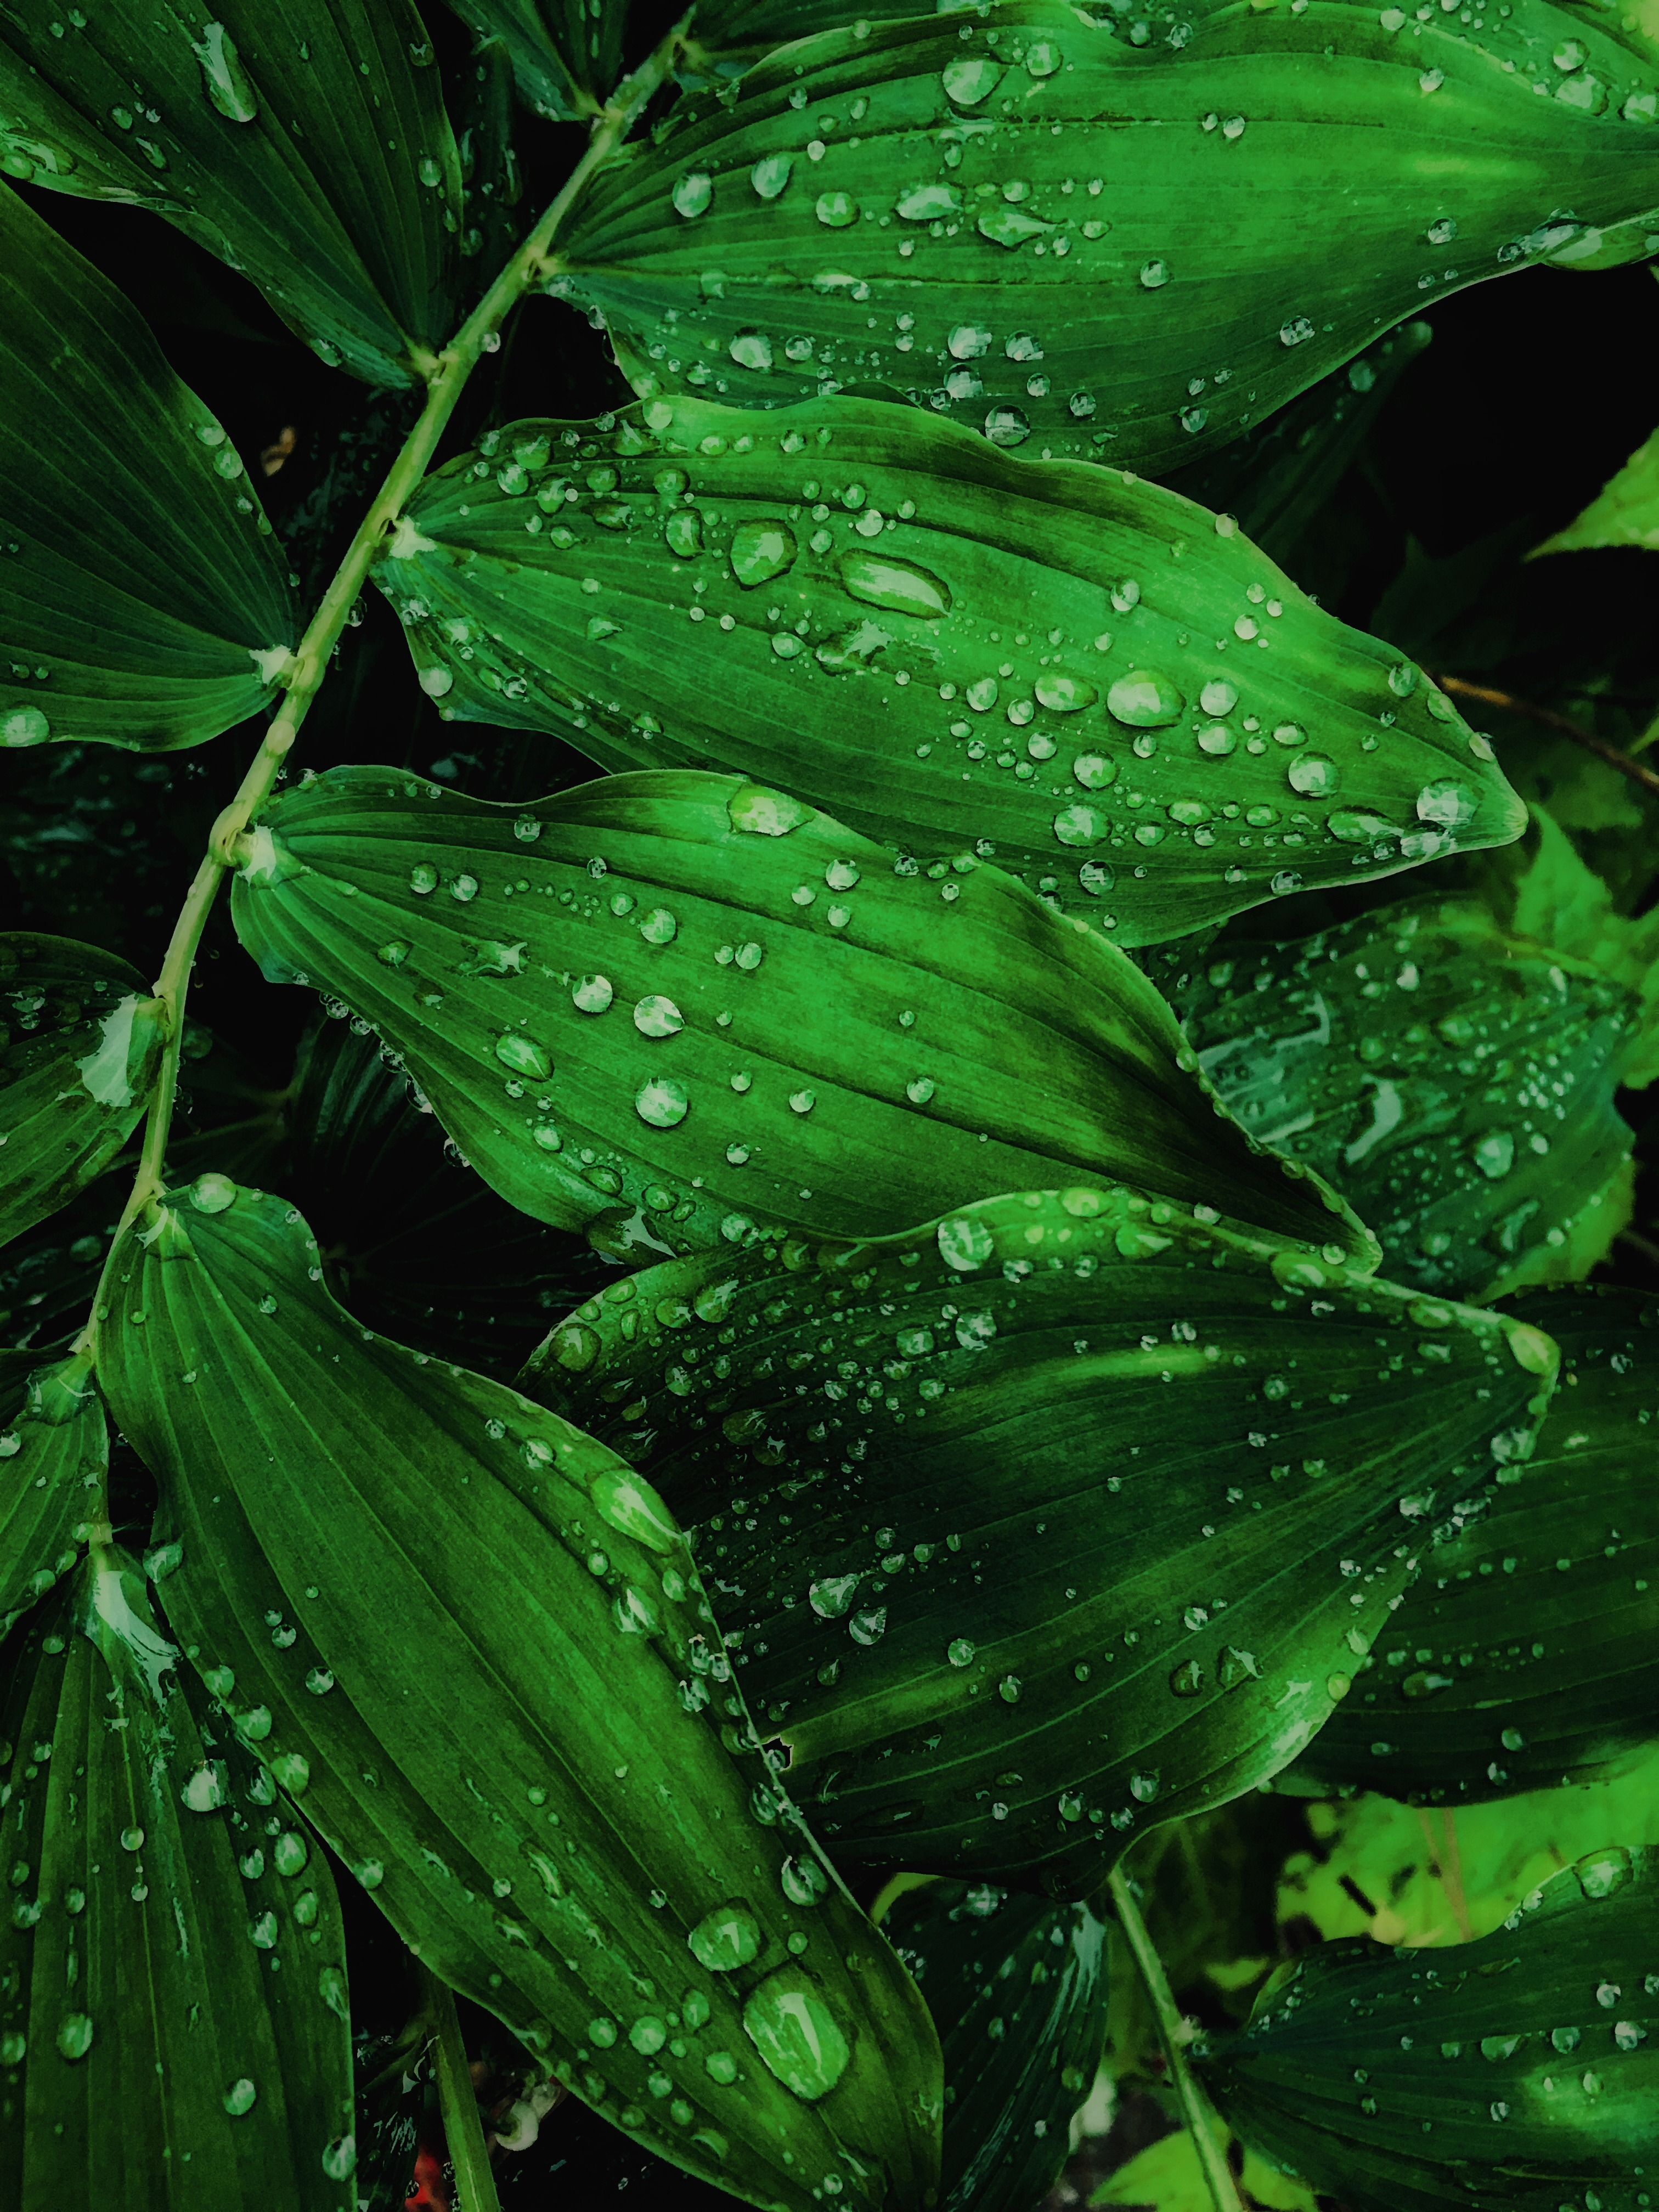 Close-Up Photo of Water Drops on Leaves